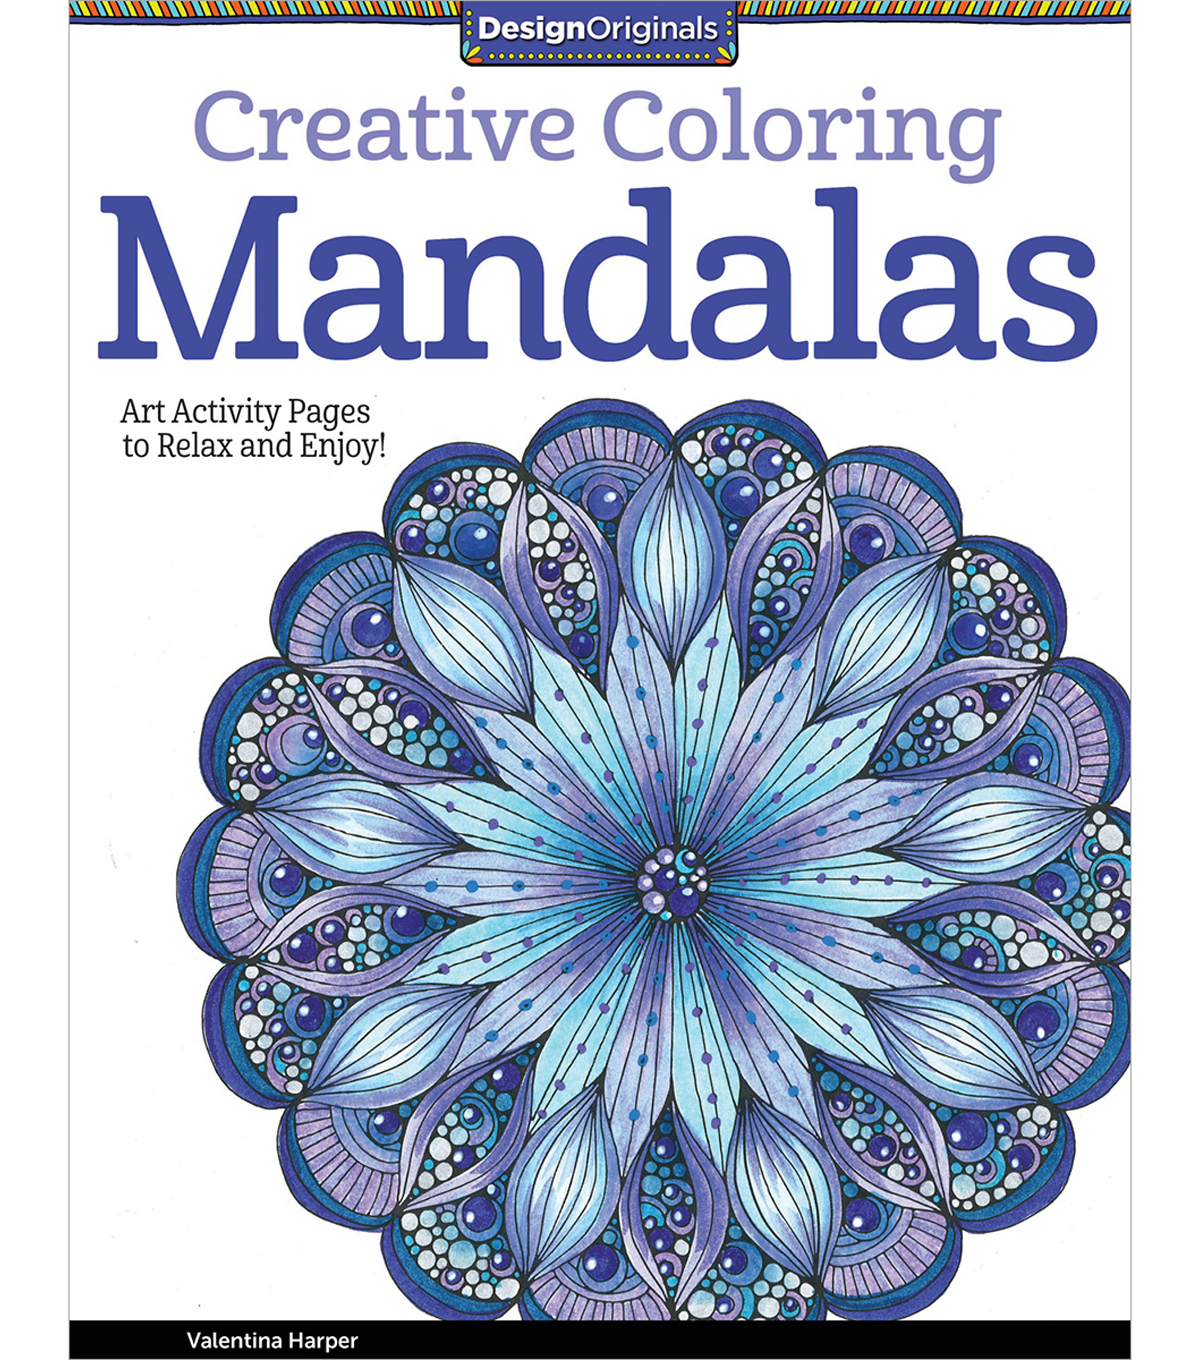 Creative Coloring Mandalas Coloring Book for Adults | JOANN